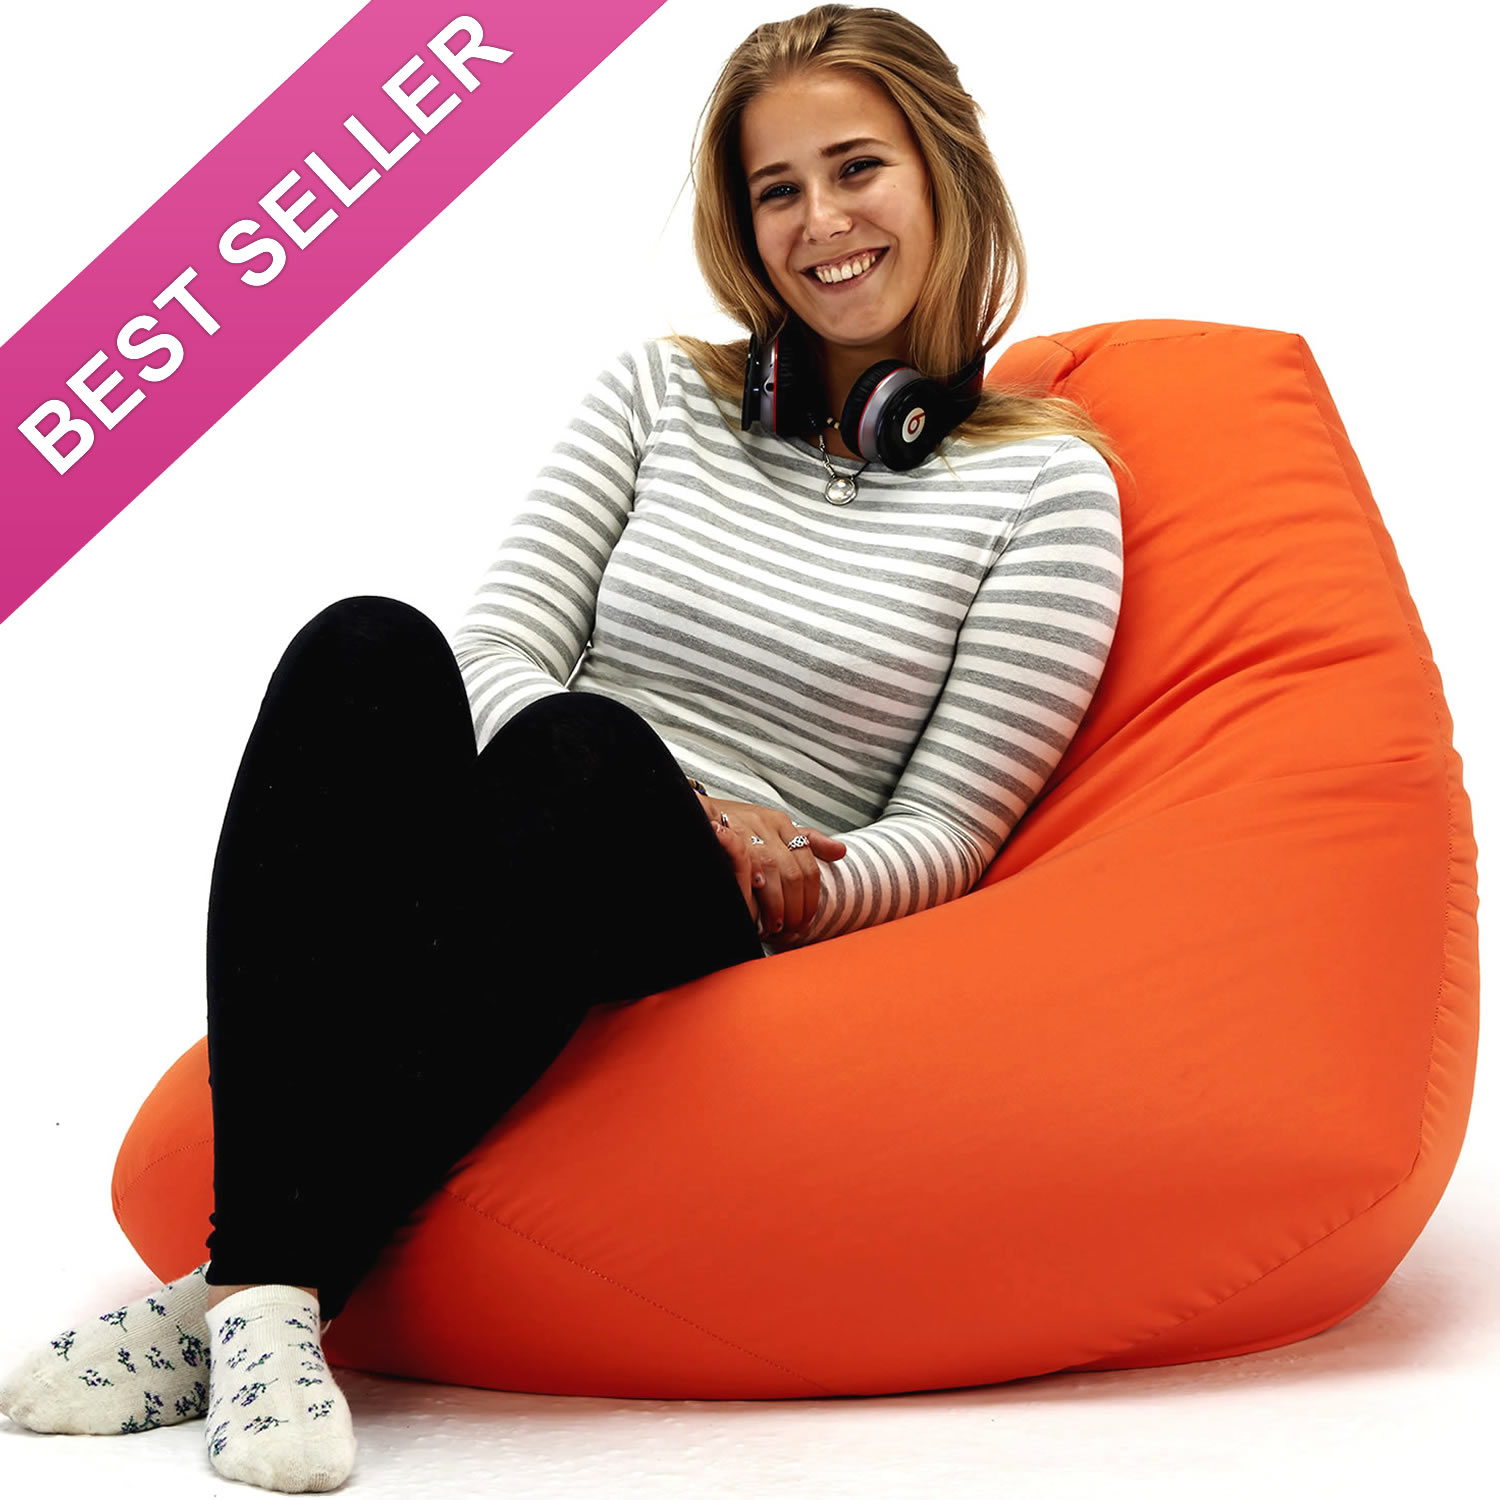 big joe bean bag chair multiple colors 33 x 32 25 theater chairs with cup holders awesome for adults rtty1